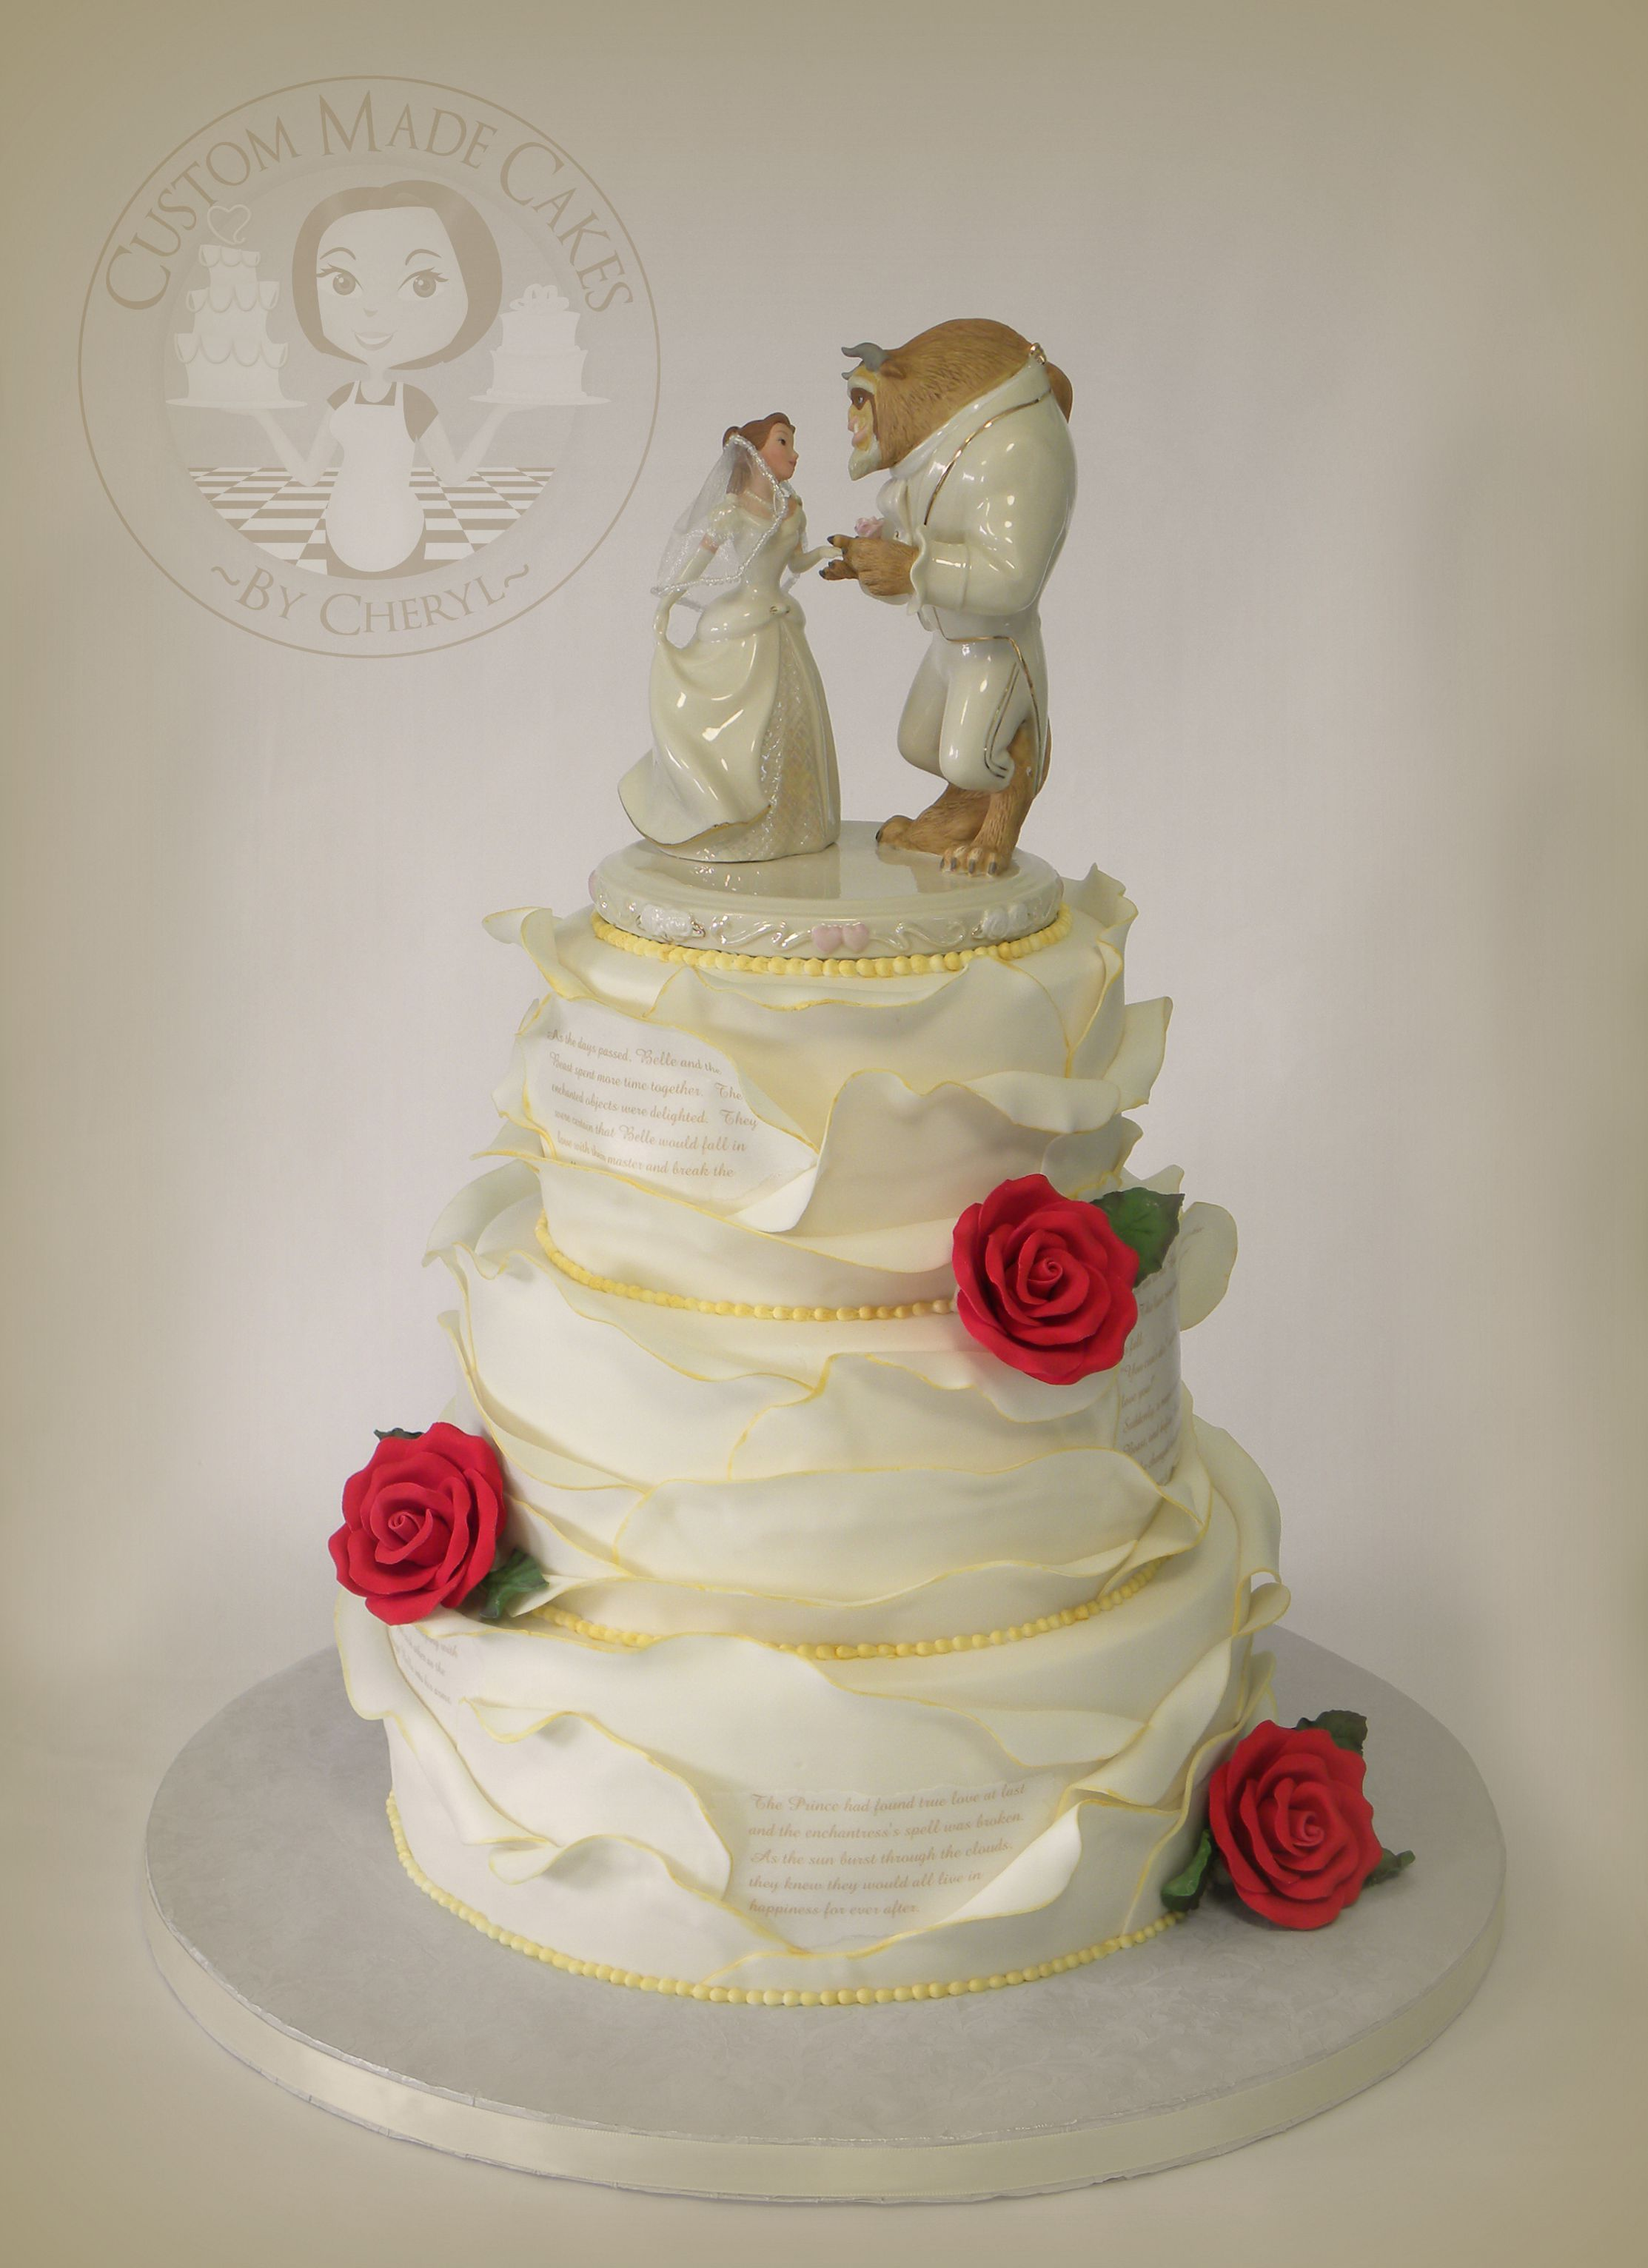 Beauty and the Beast Wedding cake Wedding cake ideas Pinterest